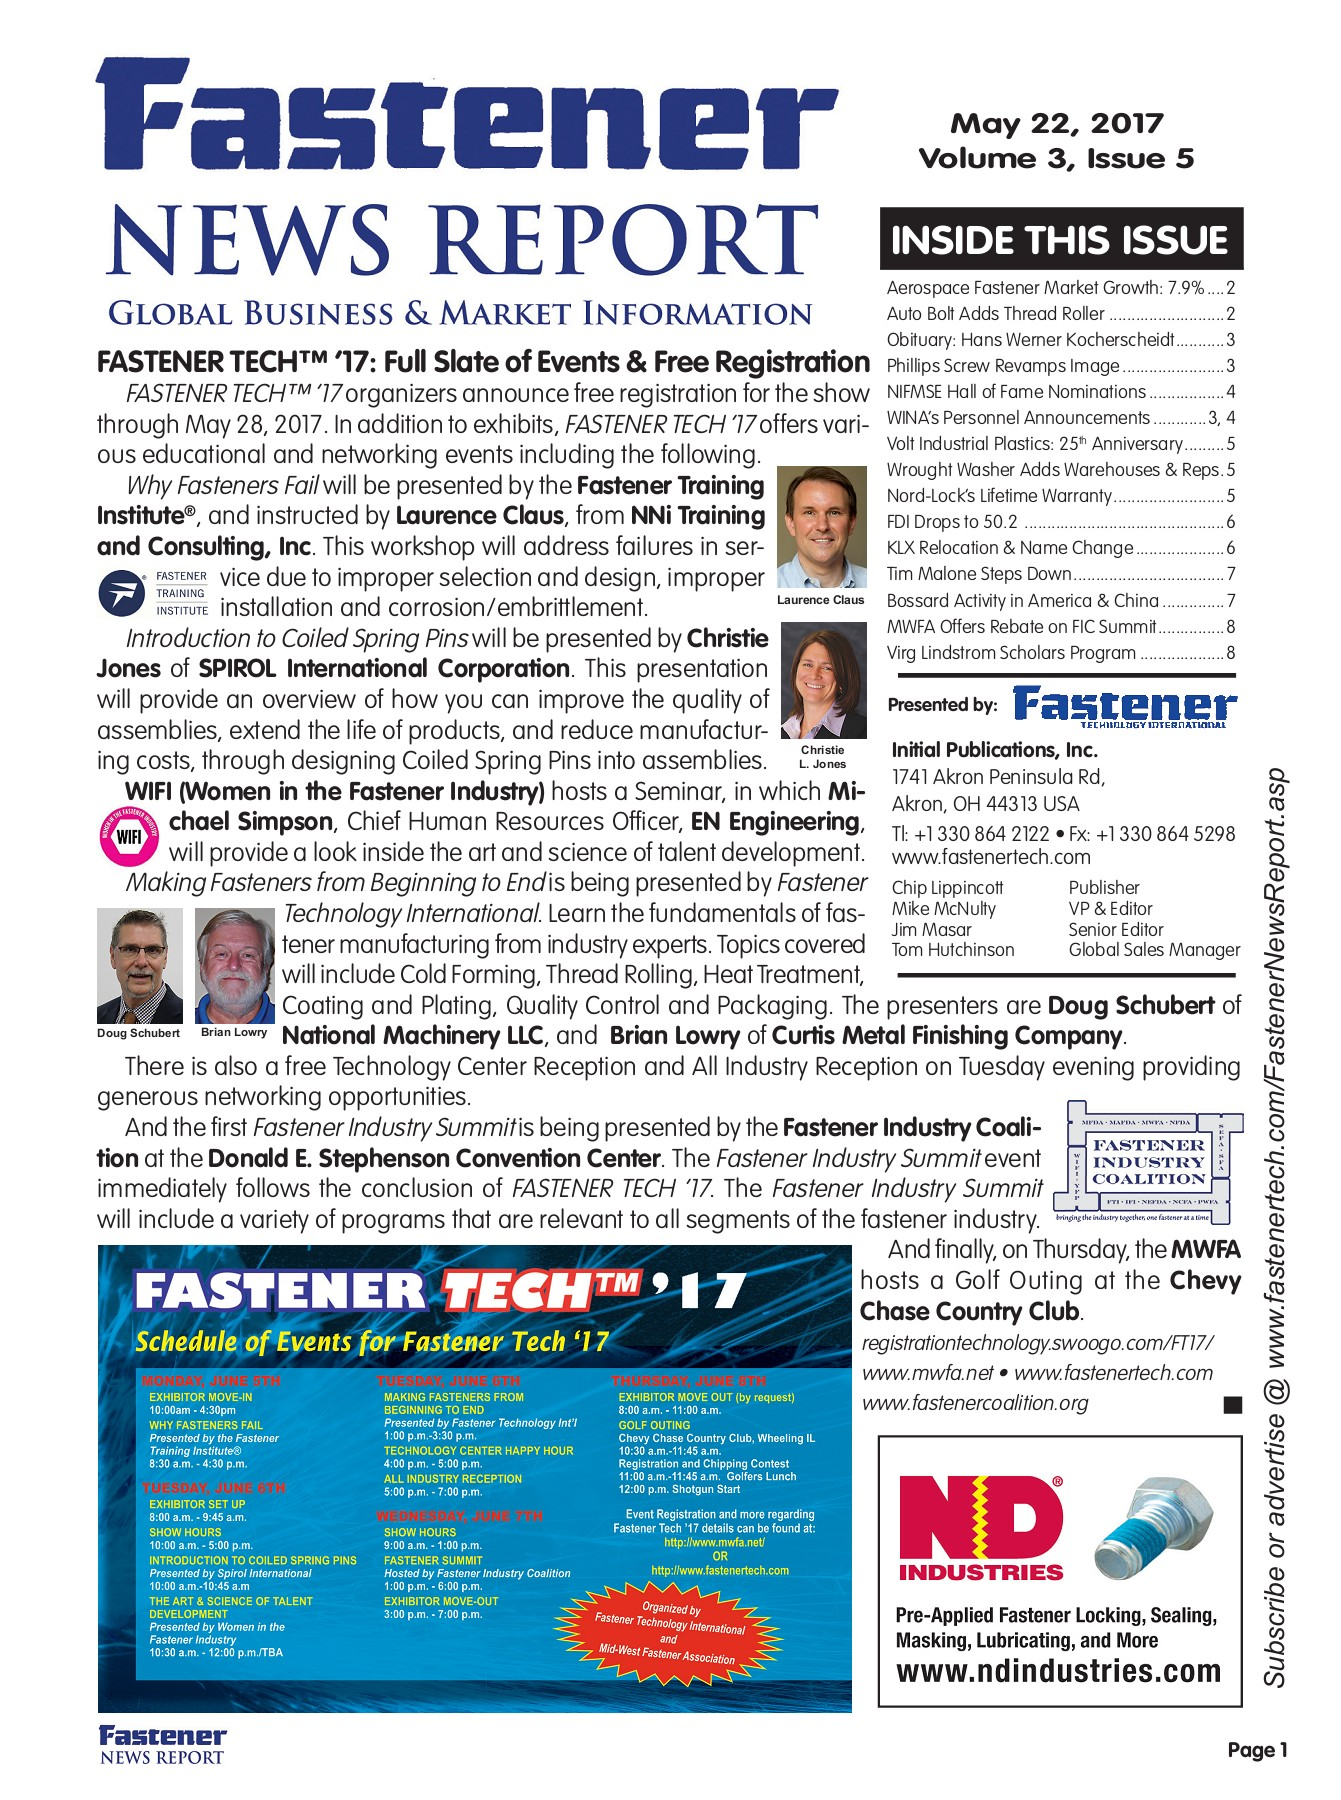 Fastener News Report May 22 Flip Book Edition Pages 1 - 8